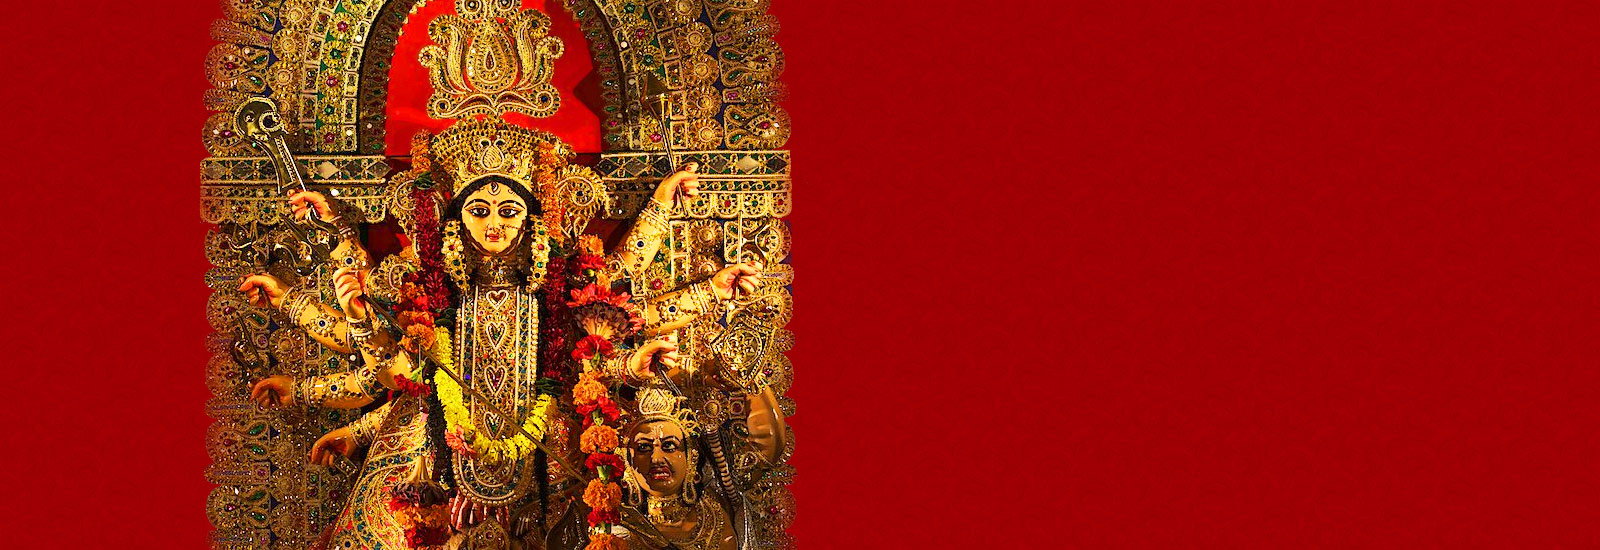 Durga puja with text